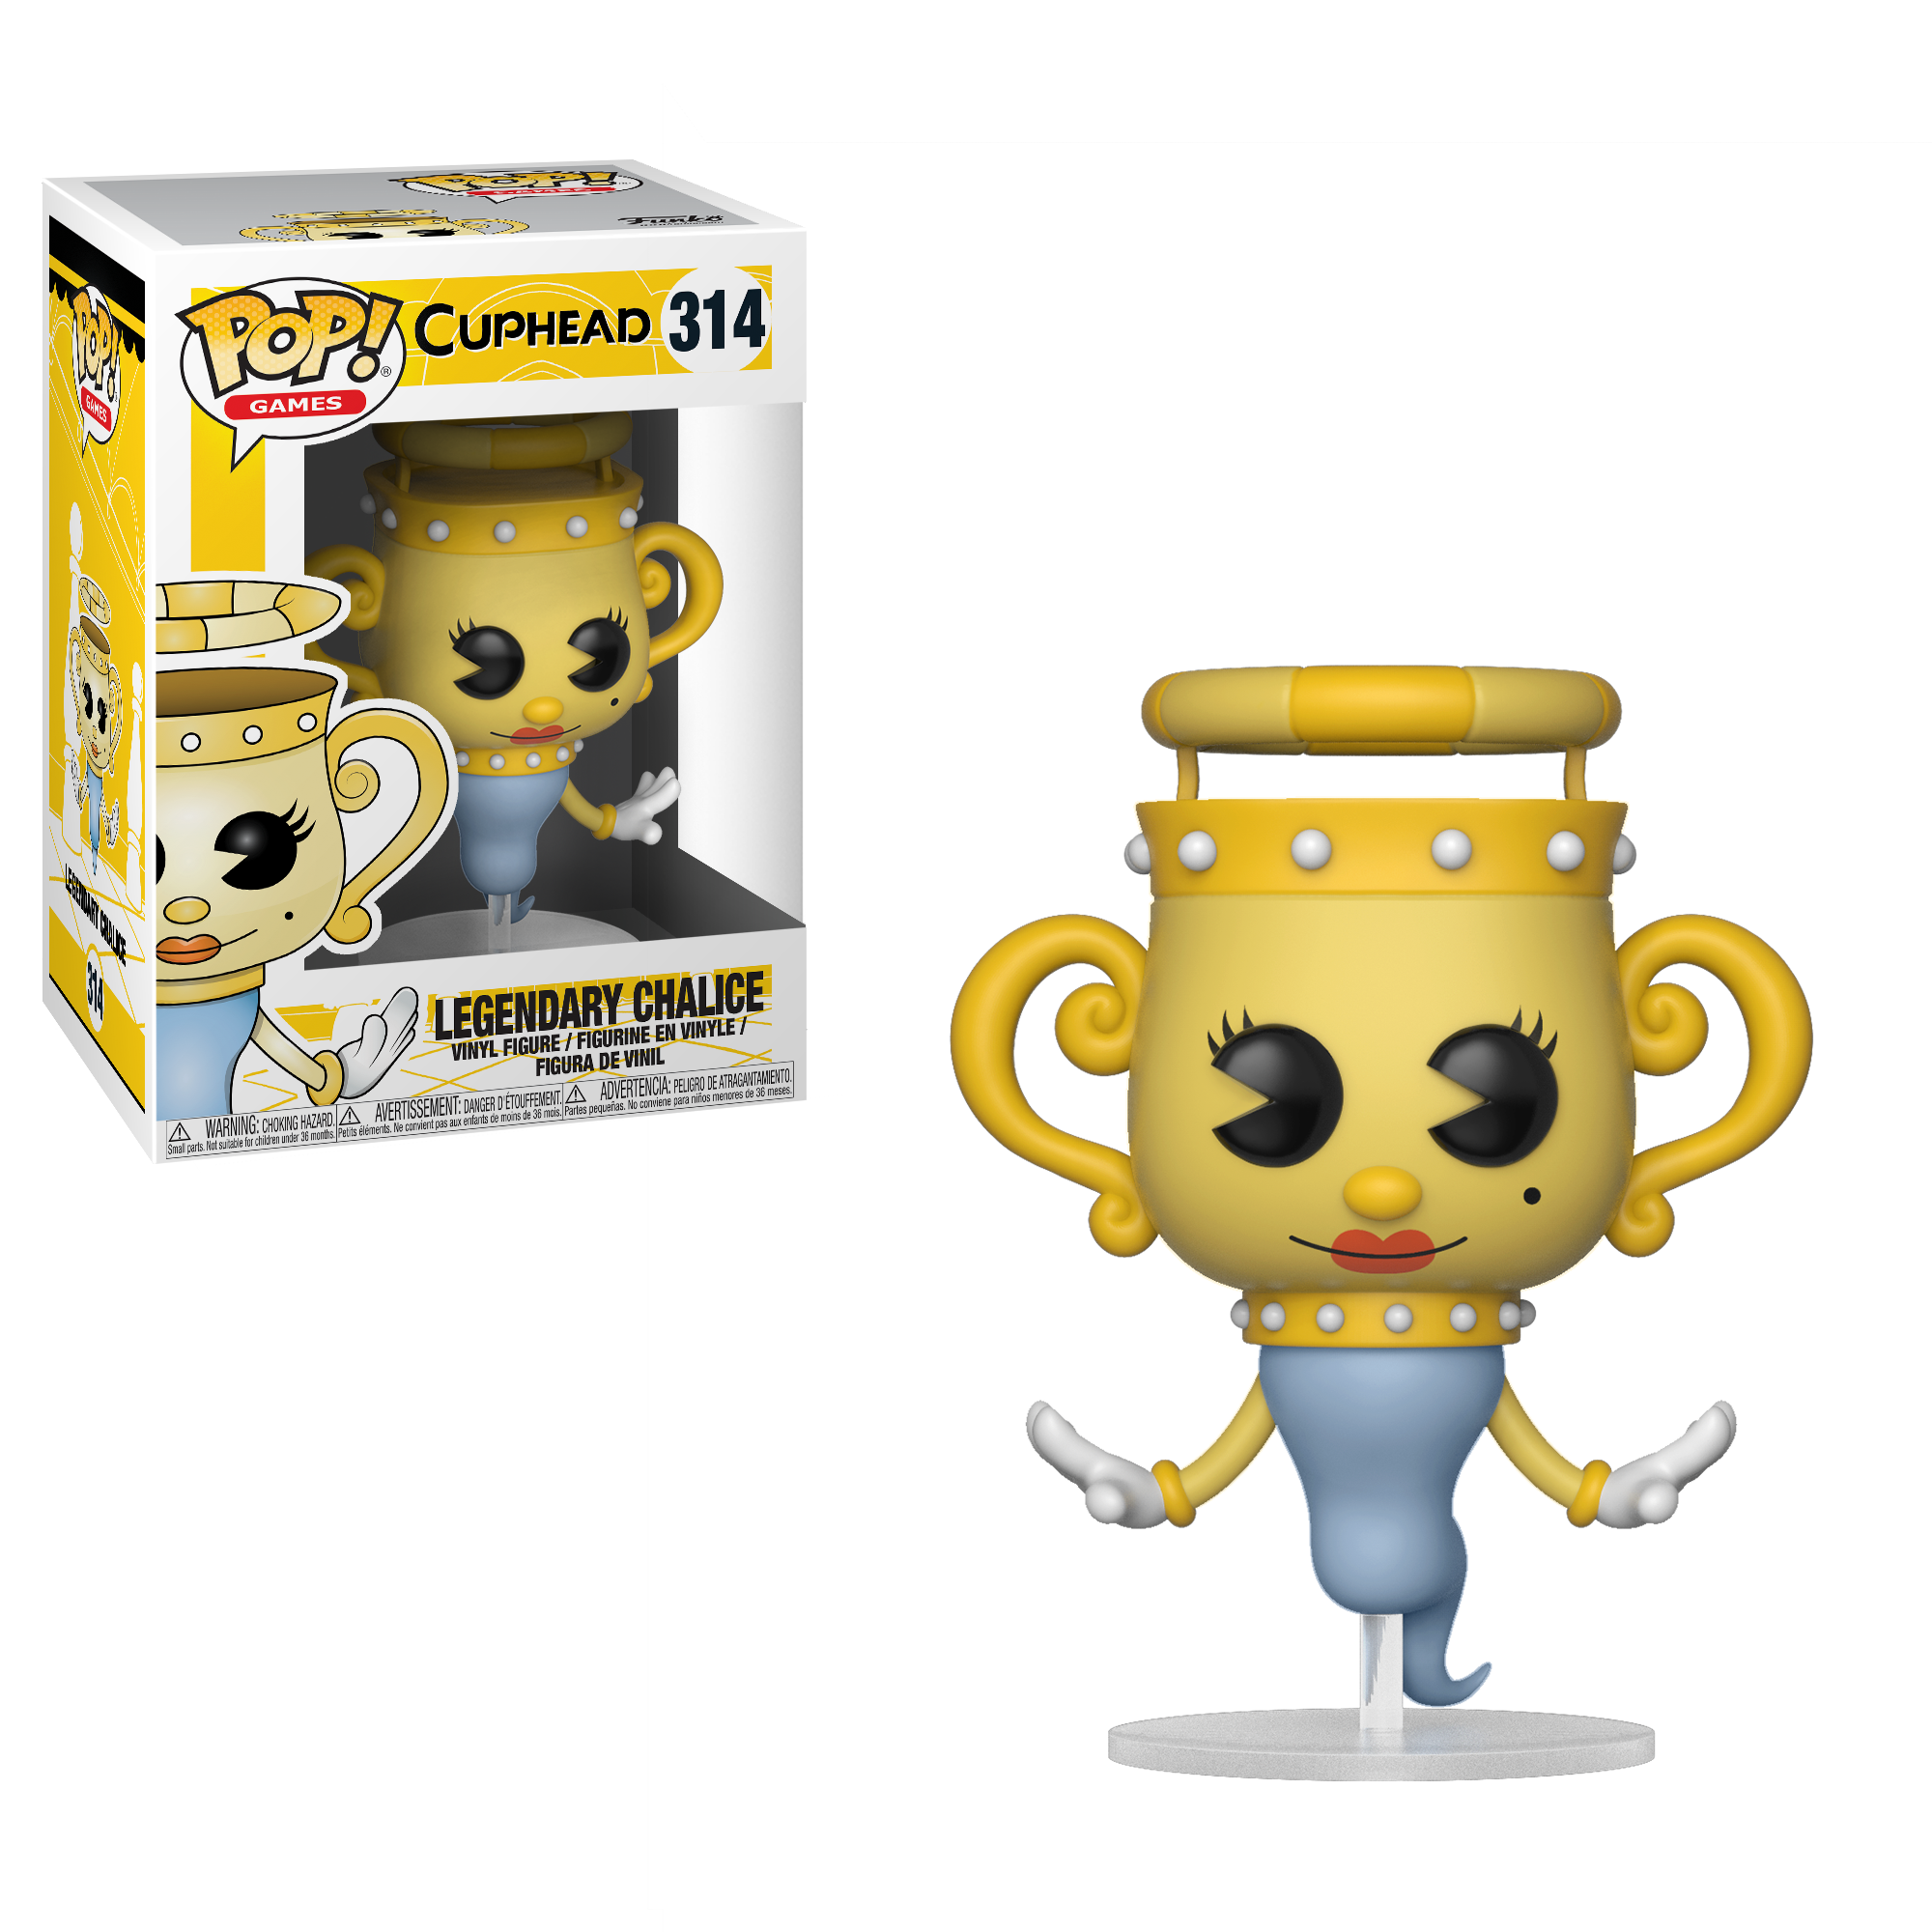 Cuphead-Legendary Chalice Collectible Figure 26969 Accessory Toys /& Games Funko Pop Games